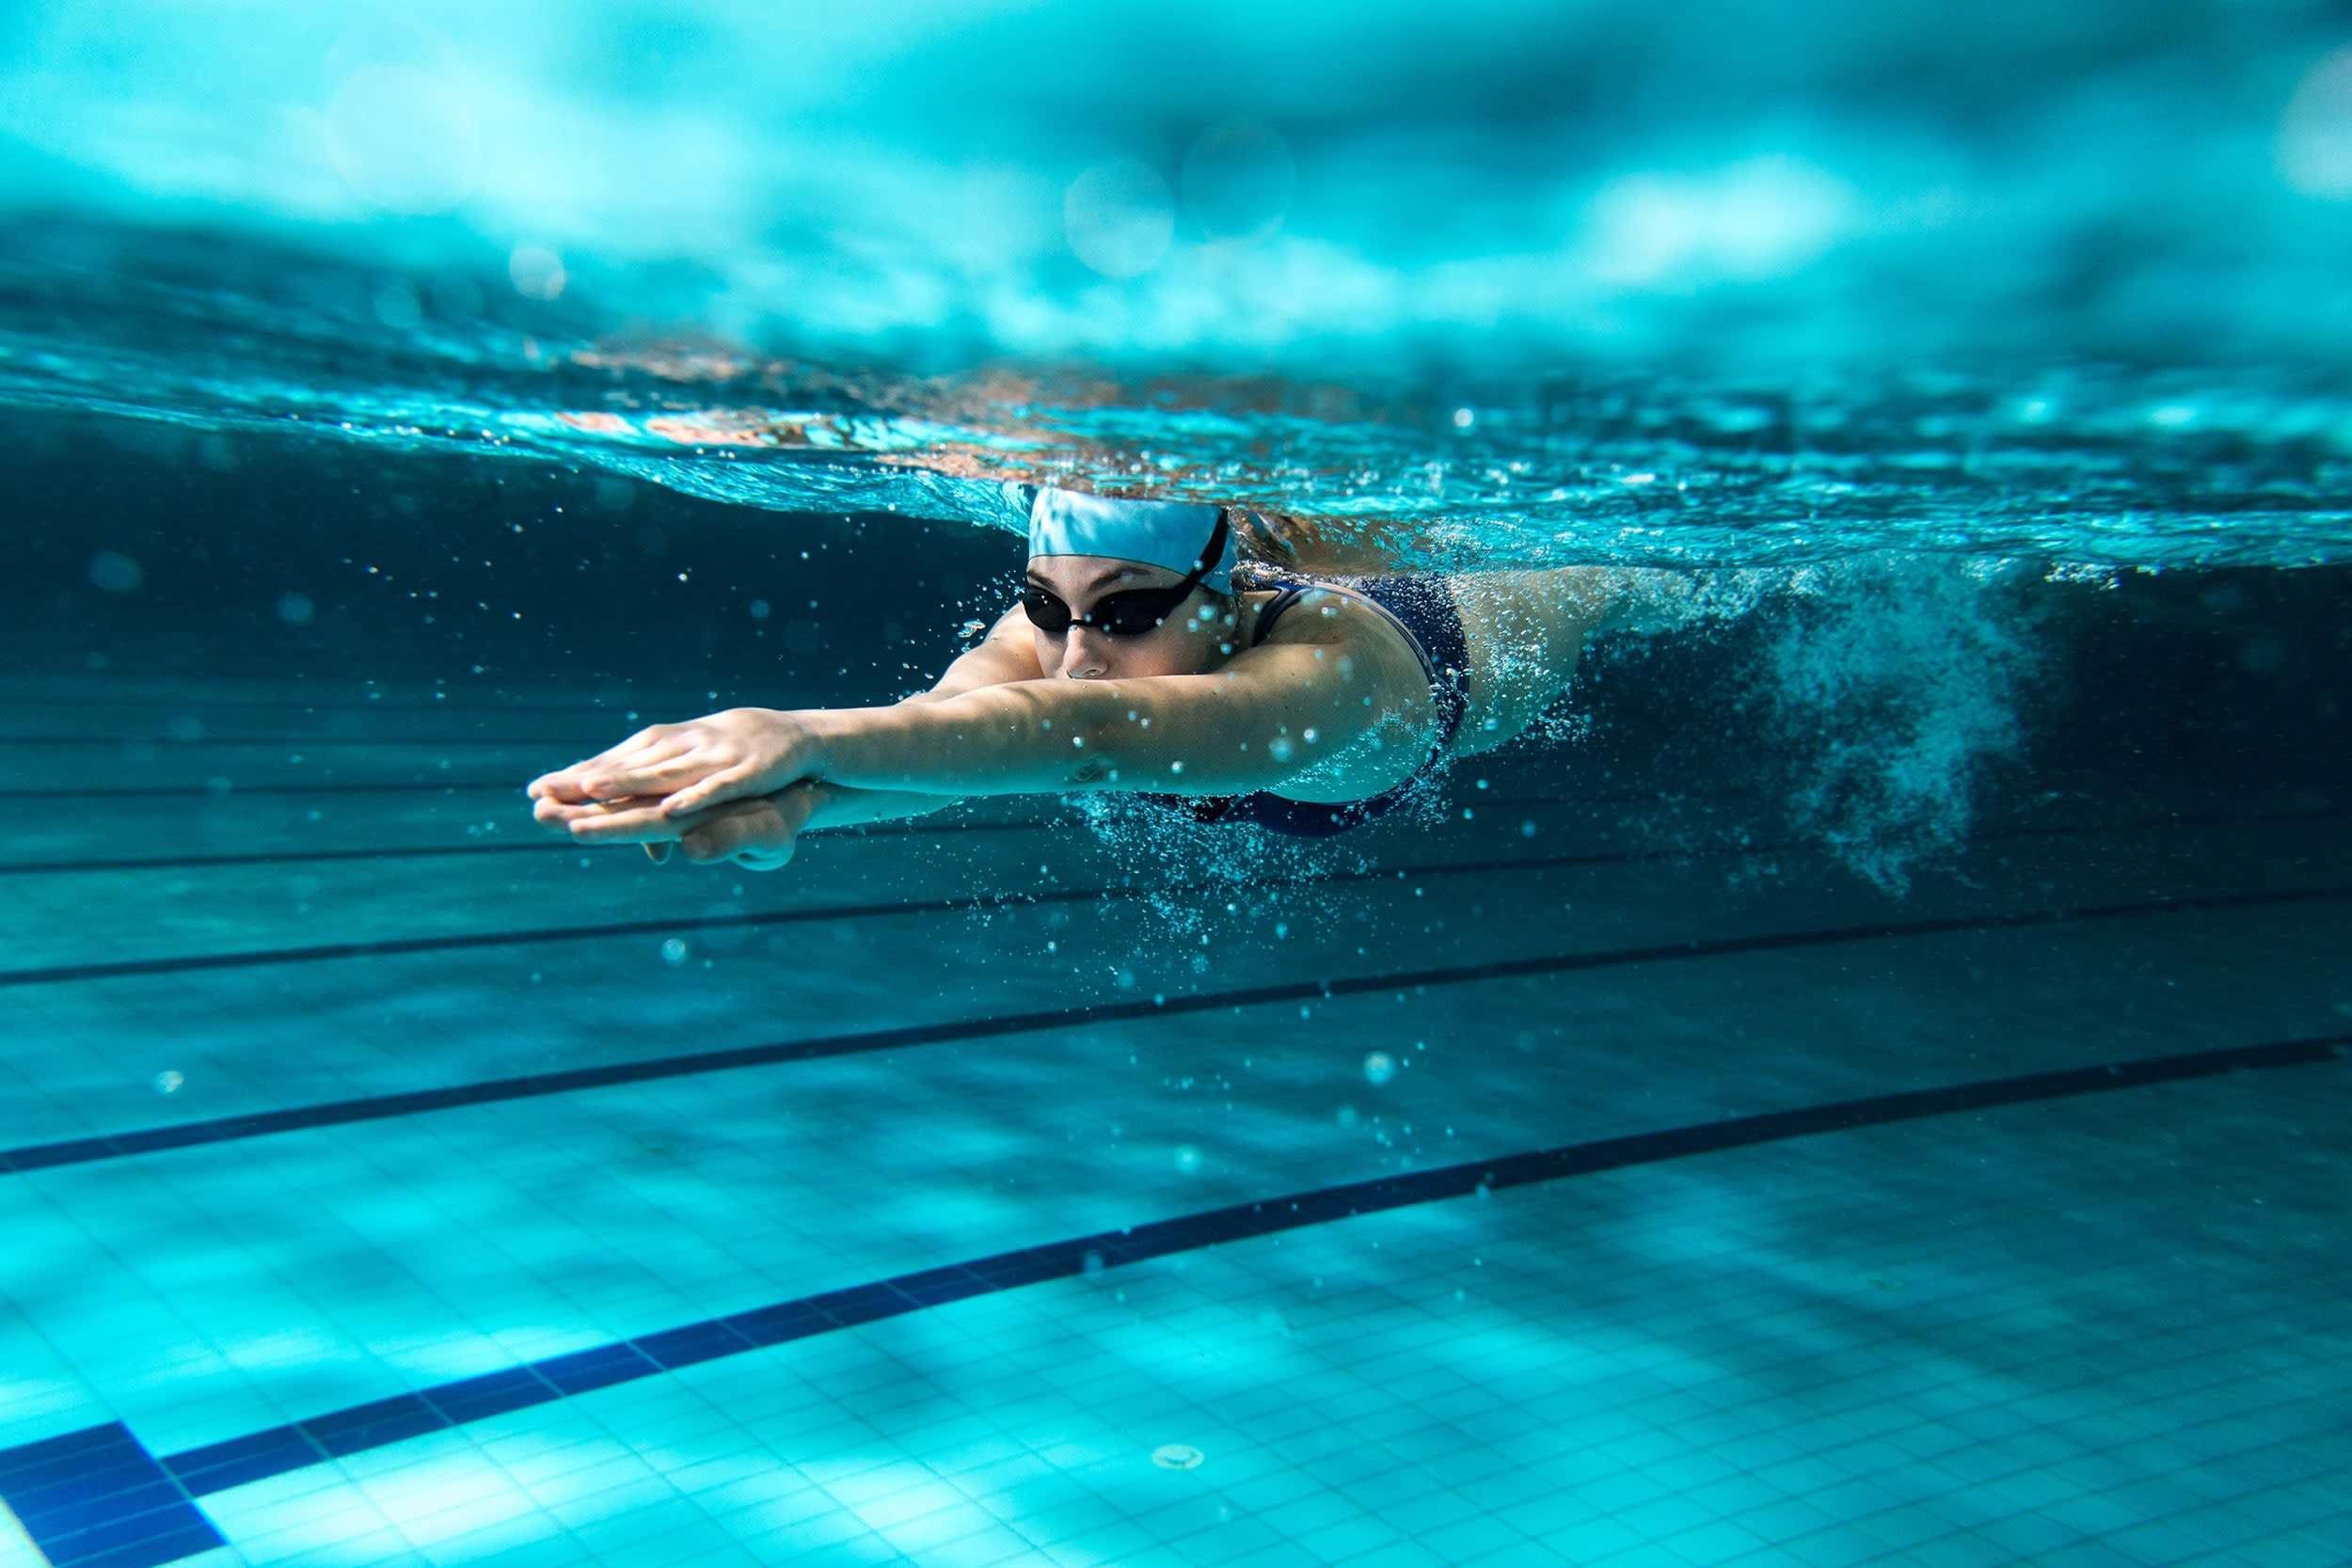 Underwater photo of a girl swimming